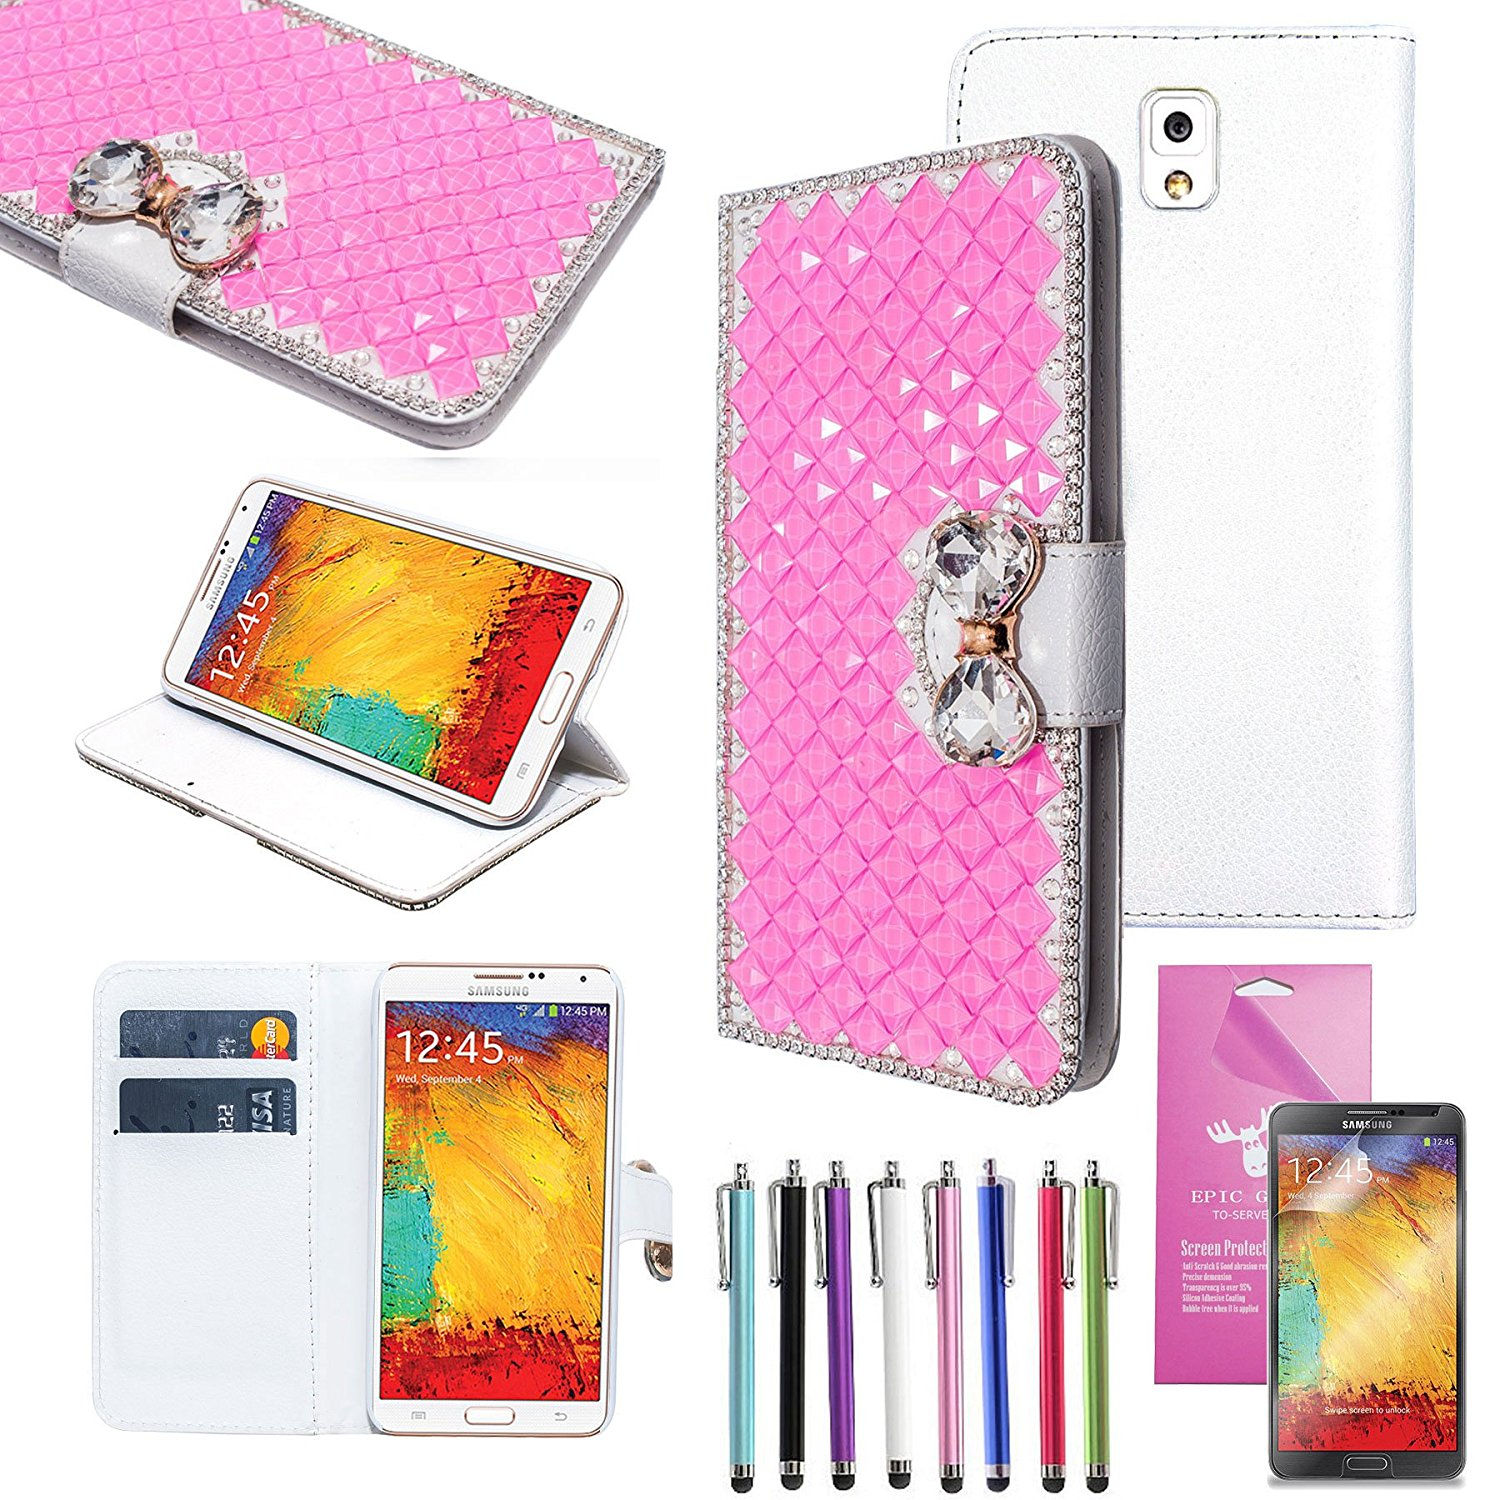 EpicGadget(TM) For Samsung Galaxy Note3 Handmade Luxury Pink Crystal Bling Bling White PU Leather Case With Crystal Bow Knot Wallet Case Magnet Flip Cover With Credit Card Holder Pouch + Note 3 N9000 Screen Protector + 1 Stylus Pen (Random Color) (US Seller!!) (Pink)